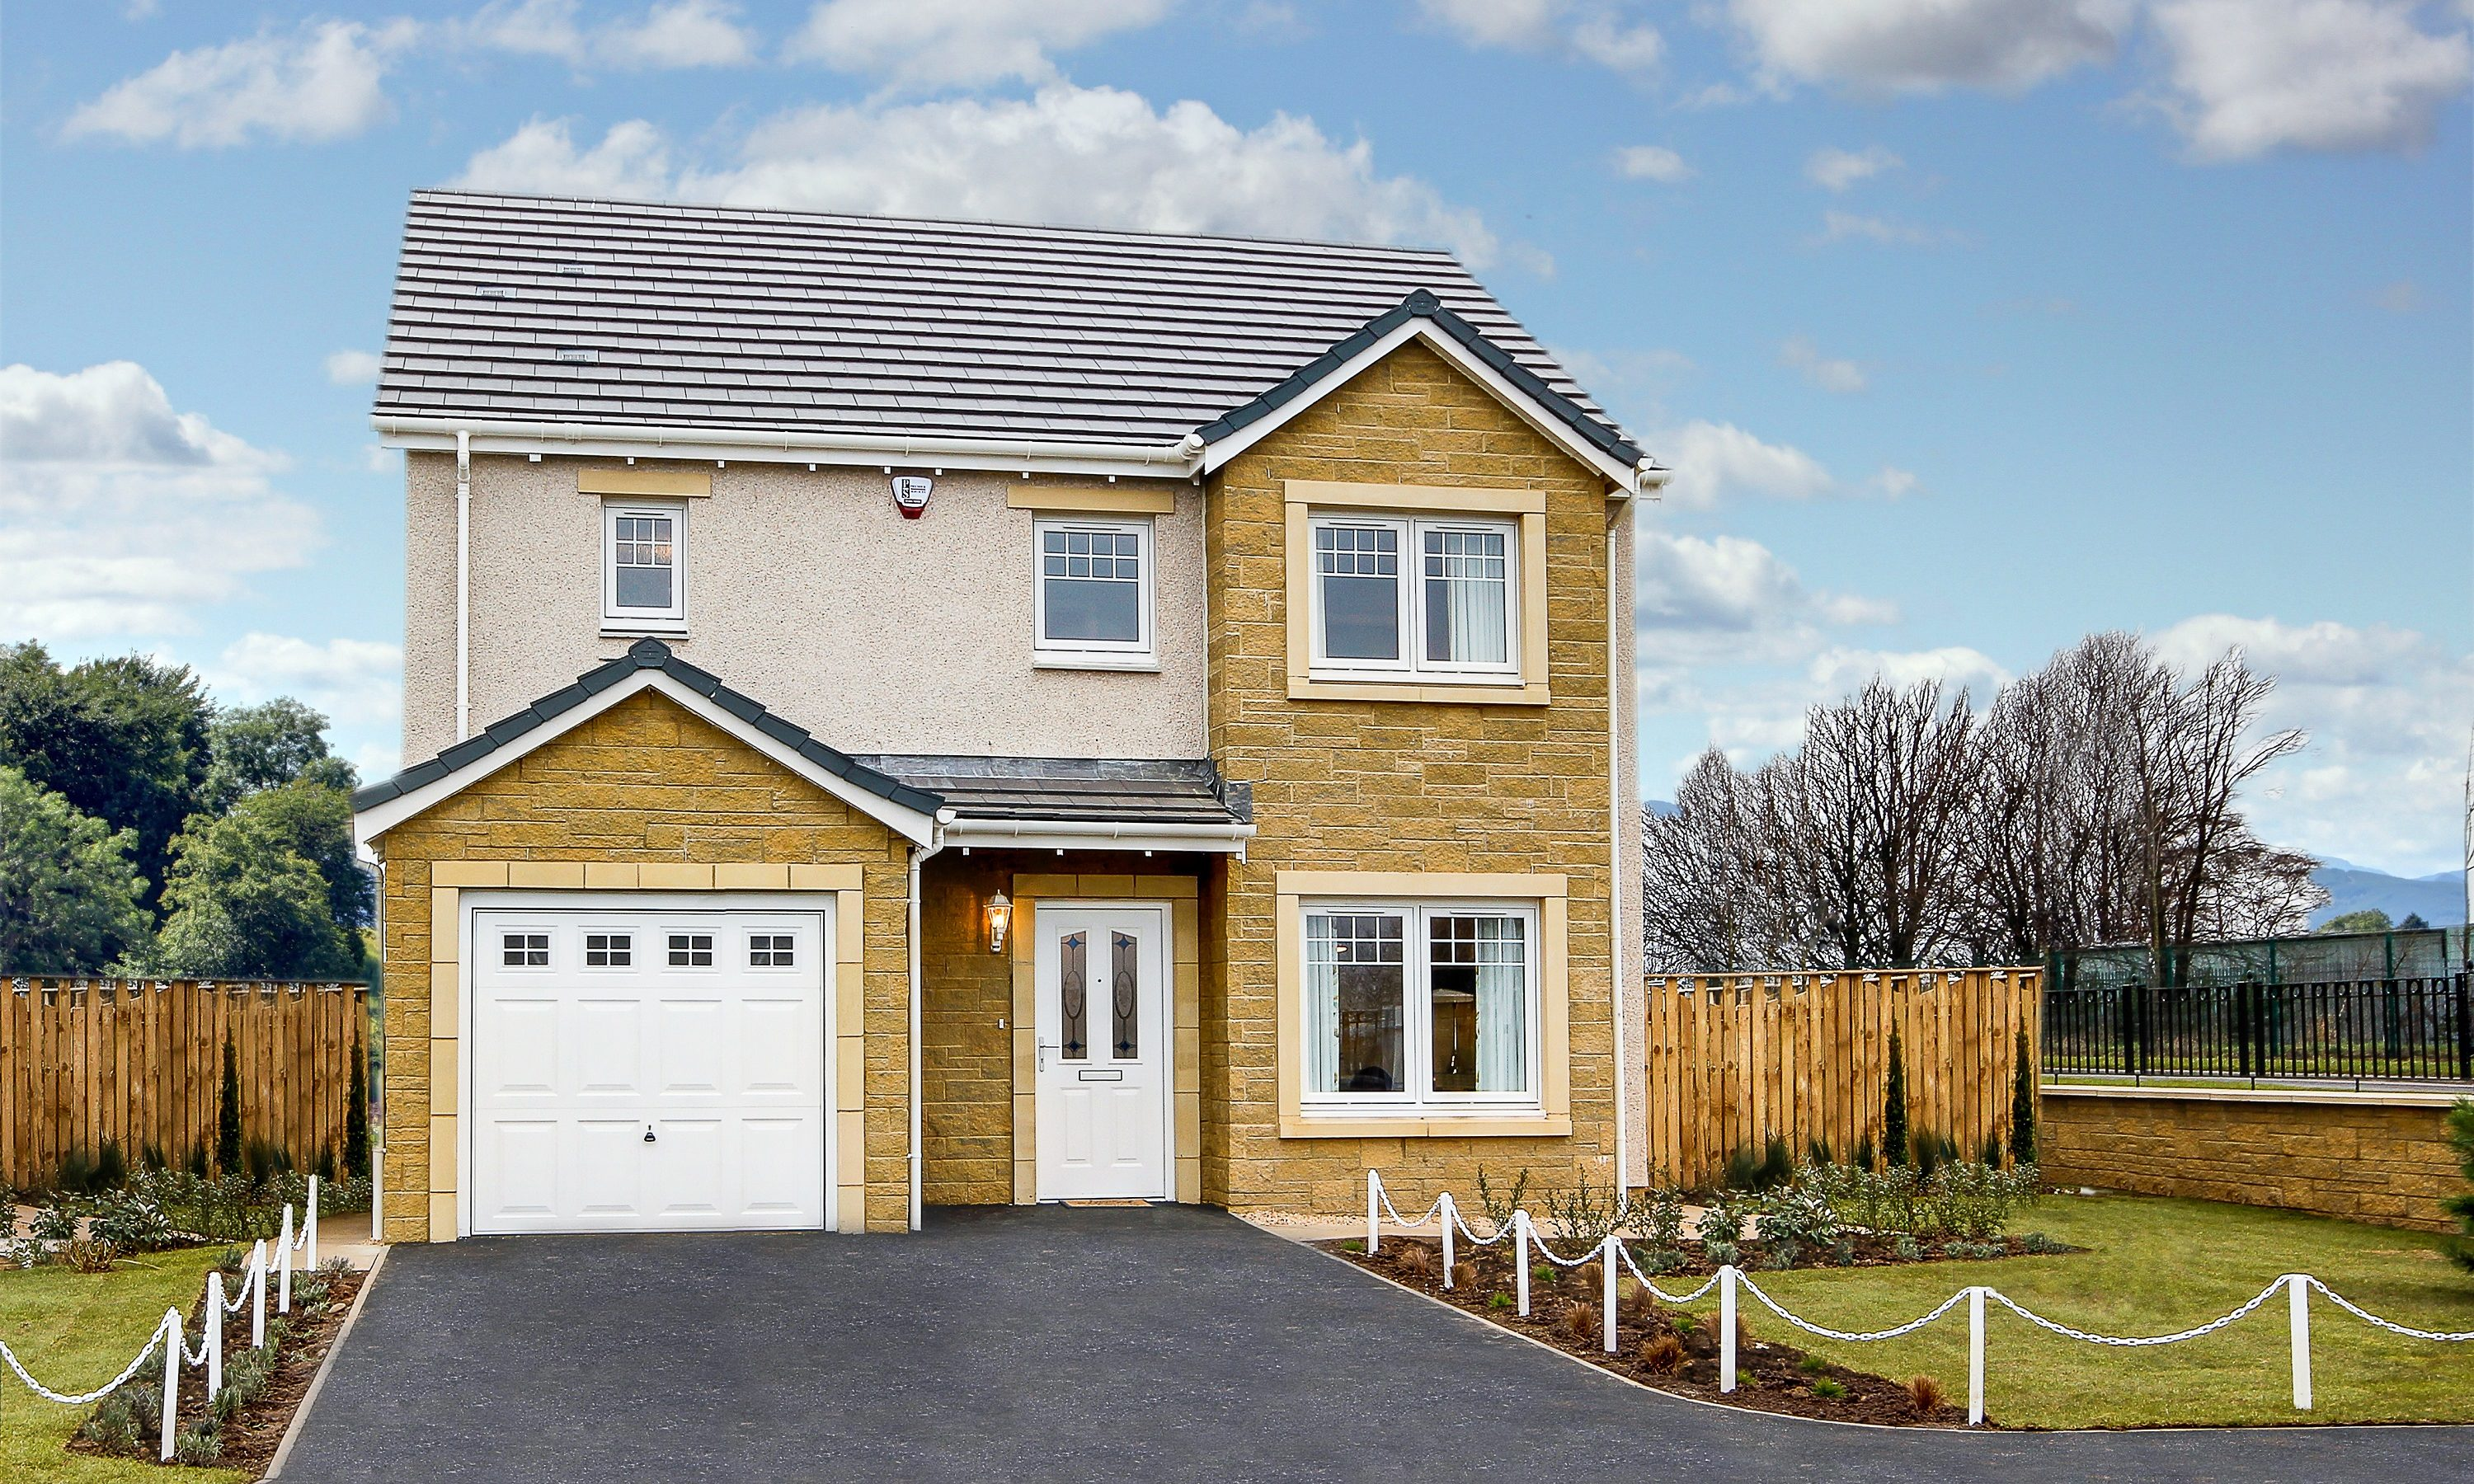 One of Muir Homes' properties at its Leven development